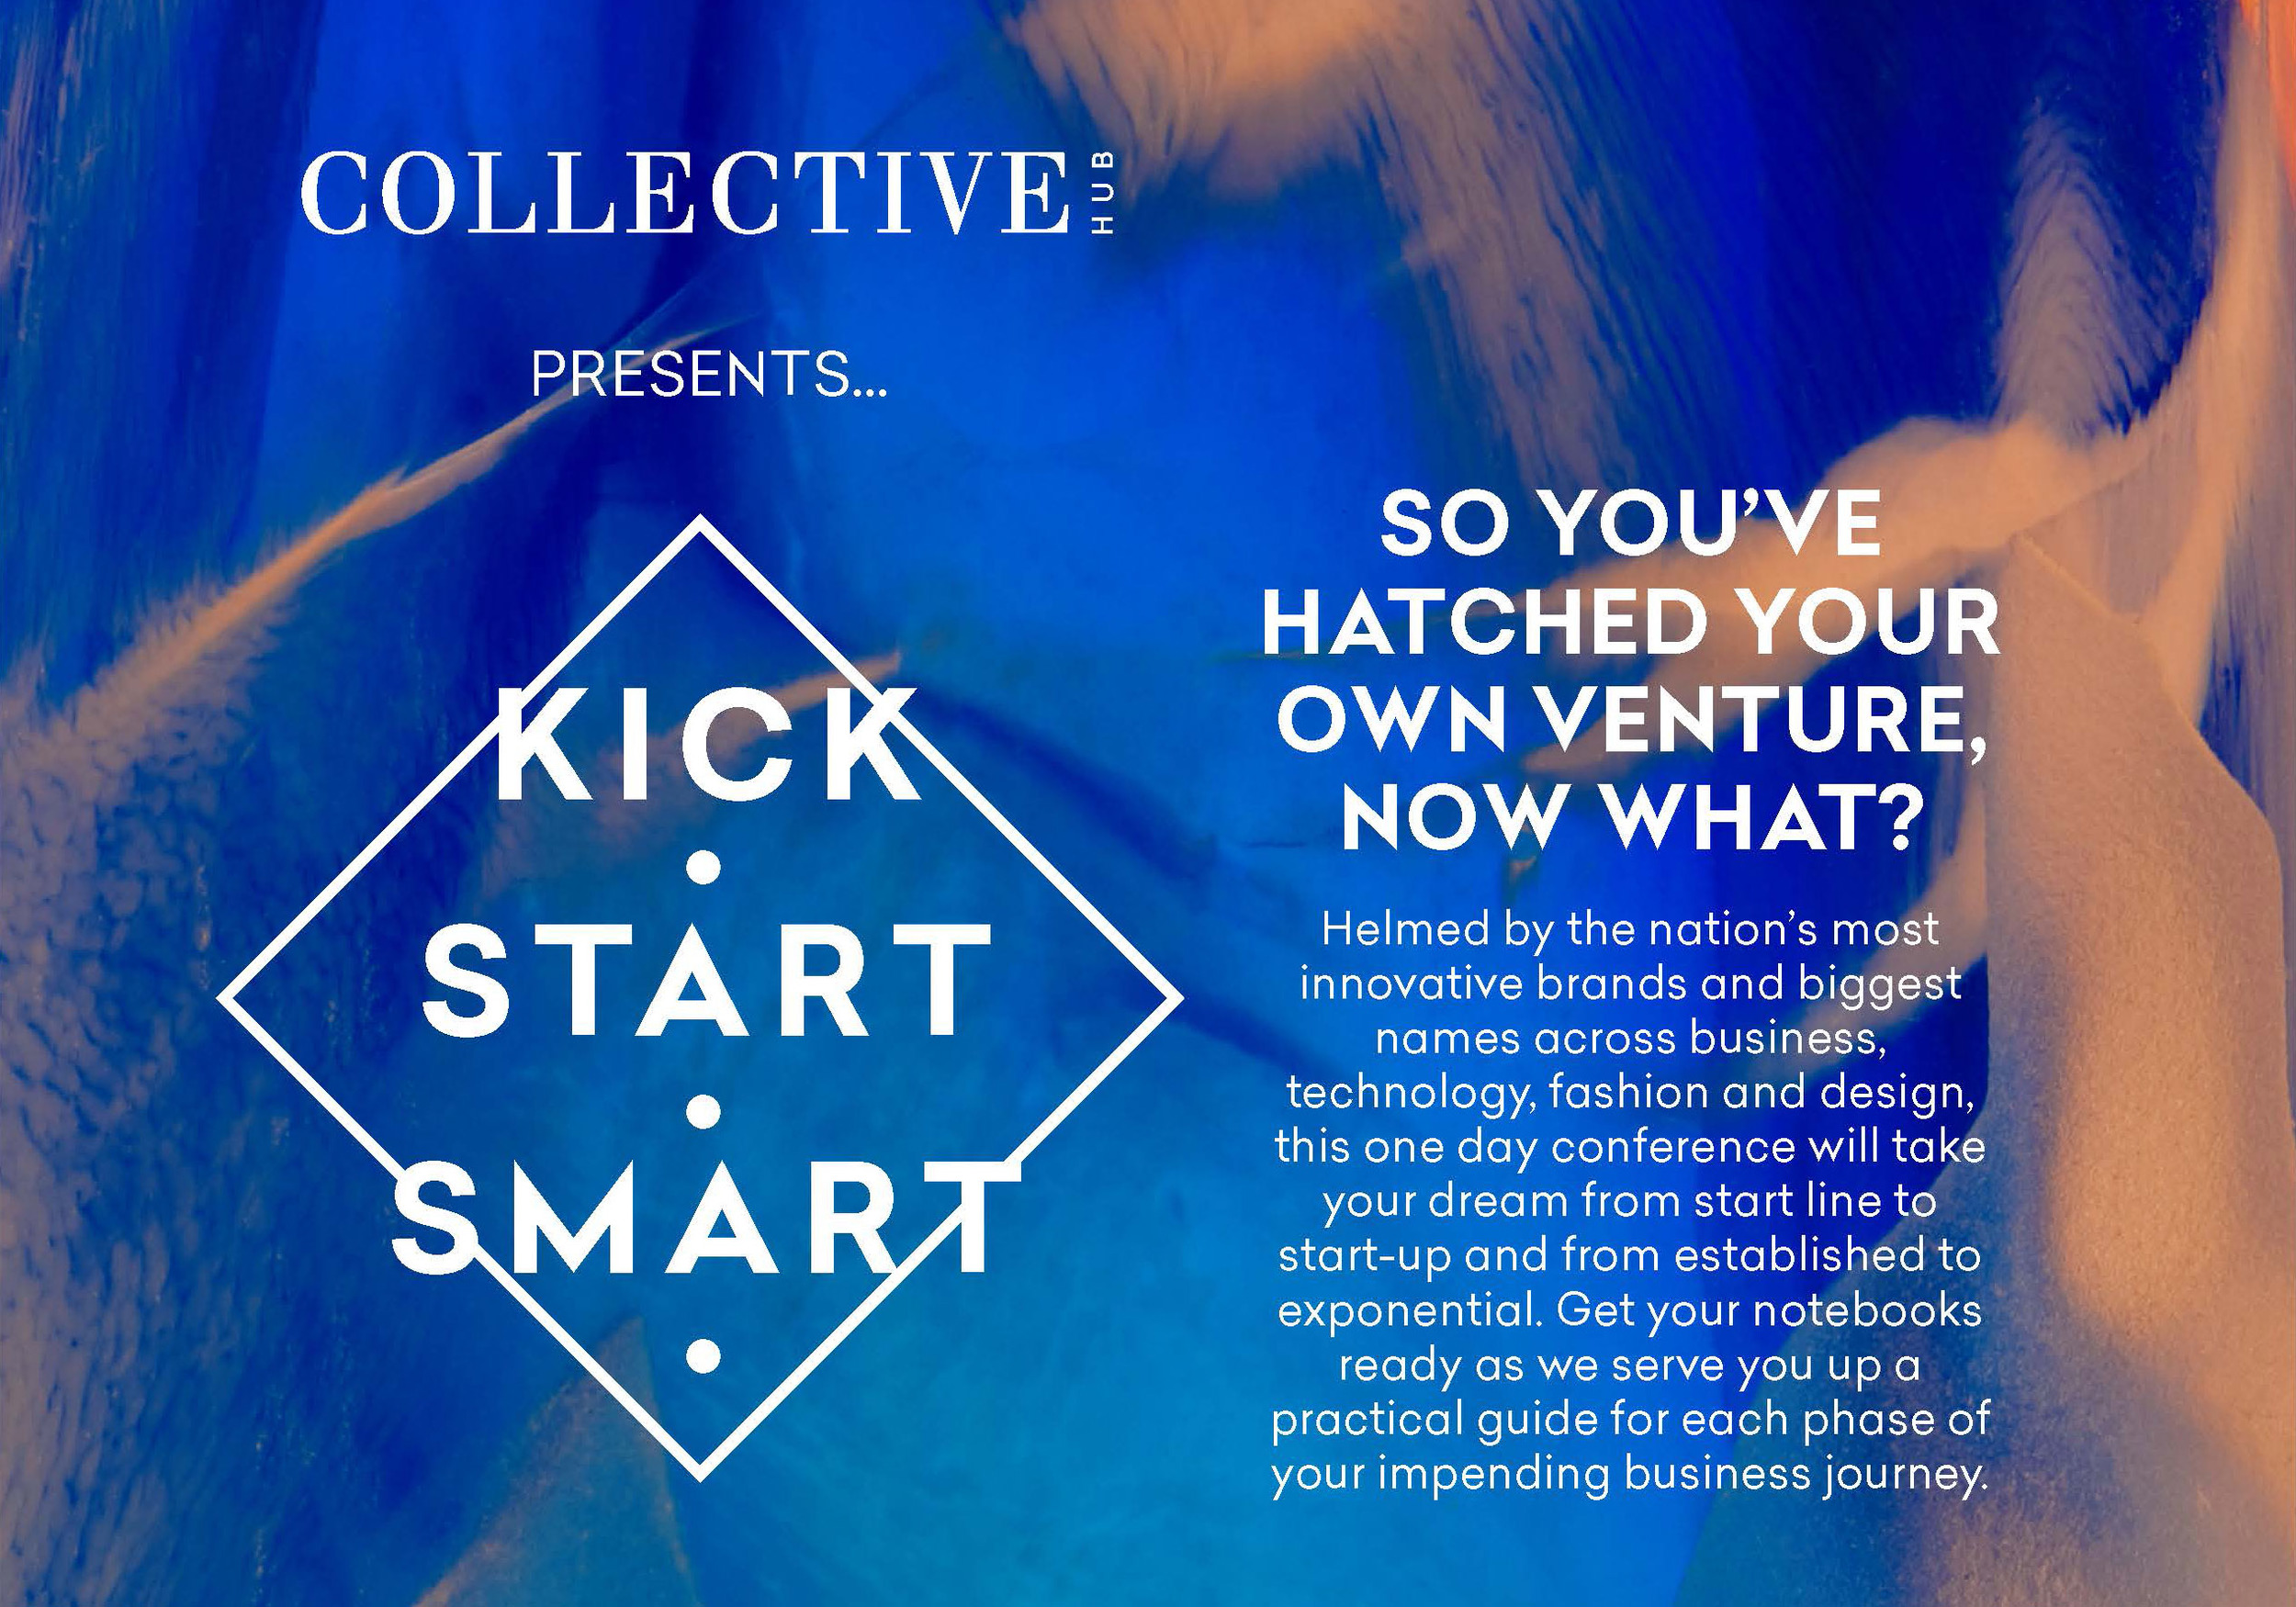 Kick Start Smart + Blog Society